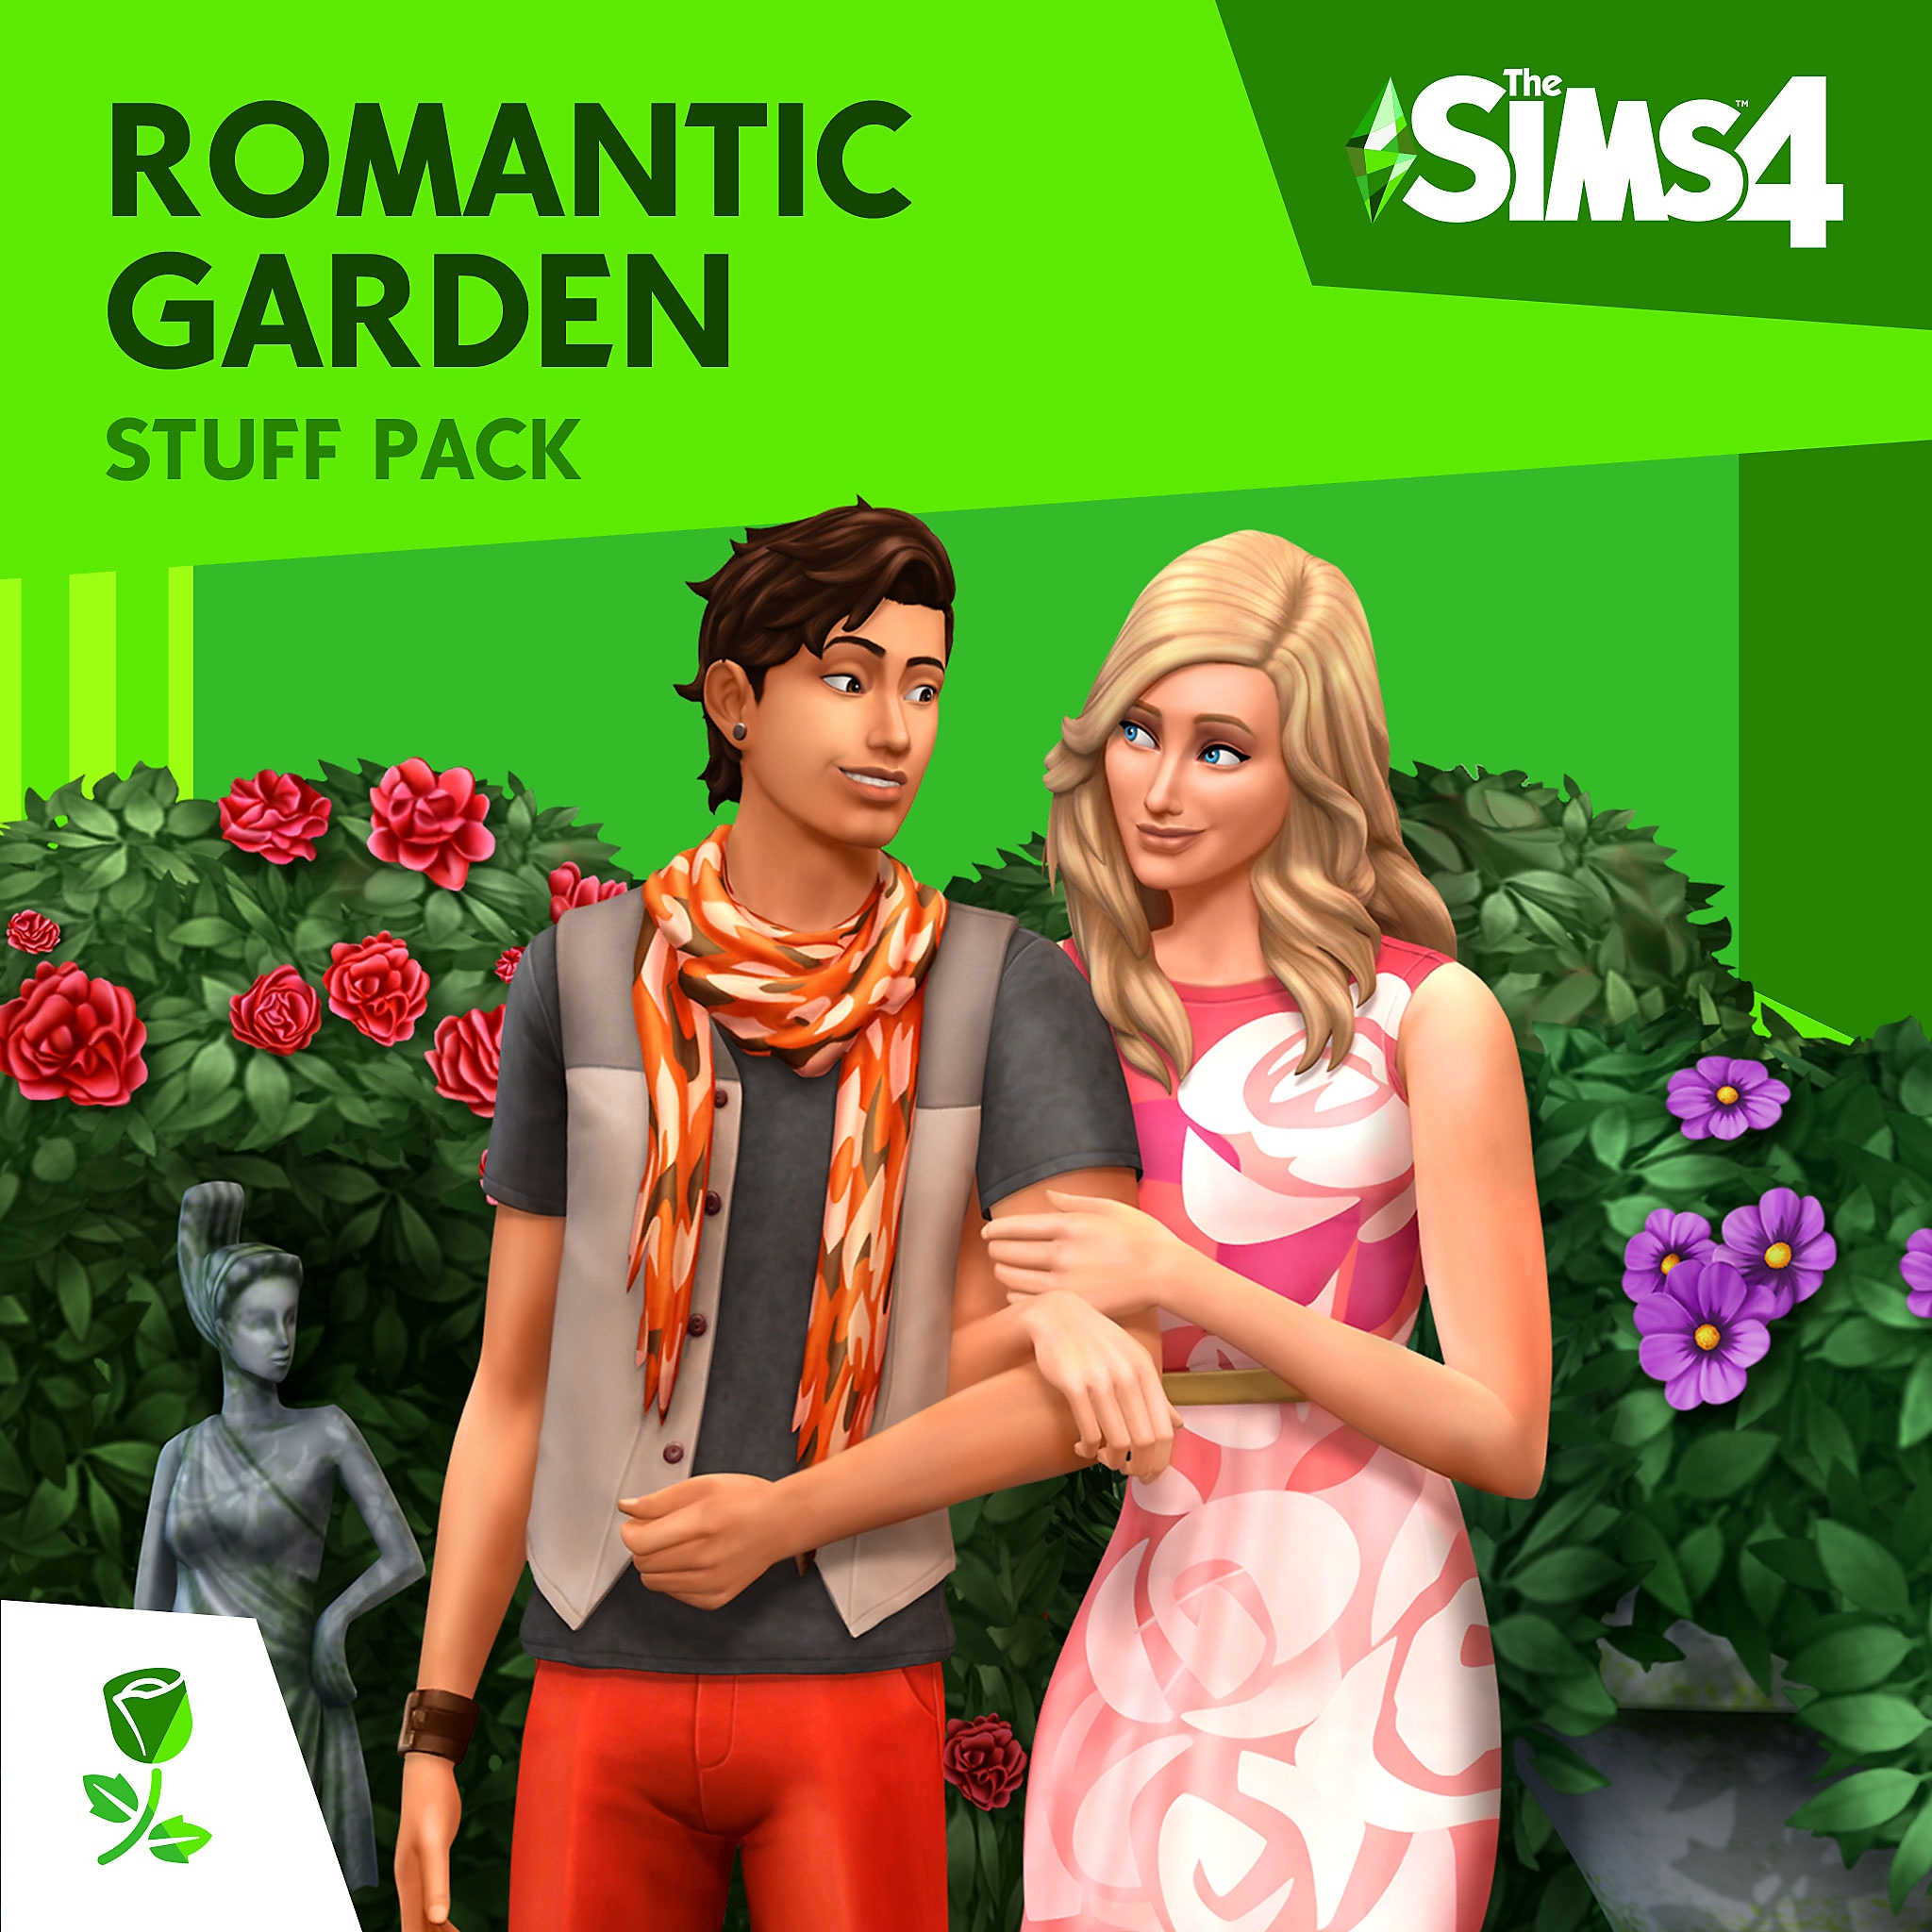 Romantic Garden Stuff Pack